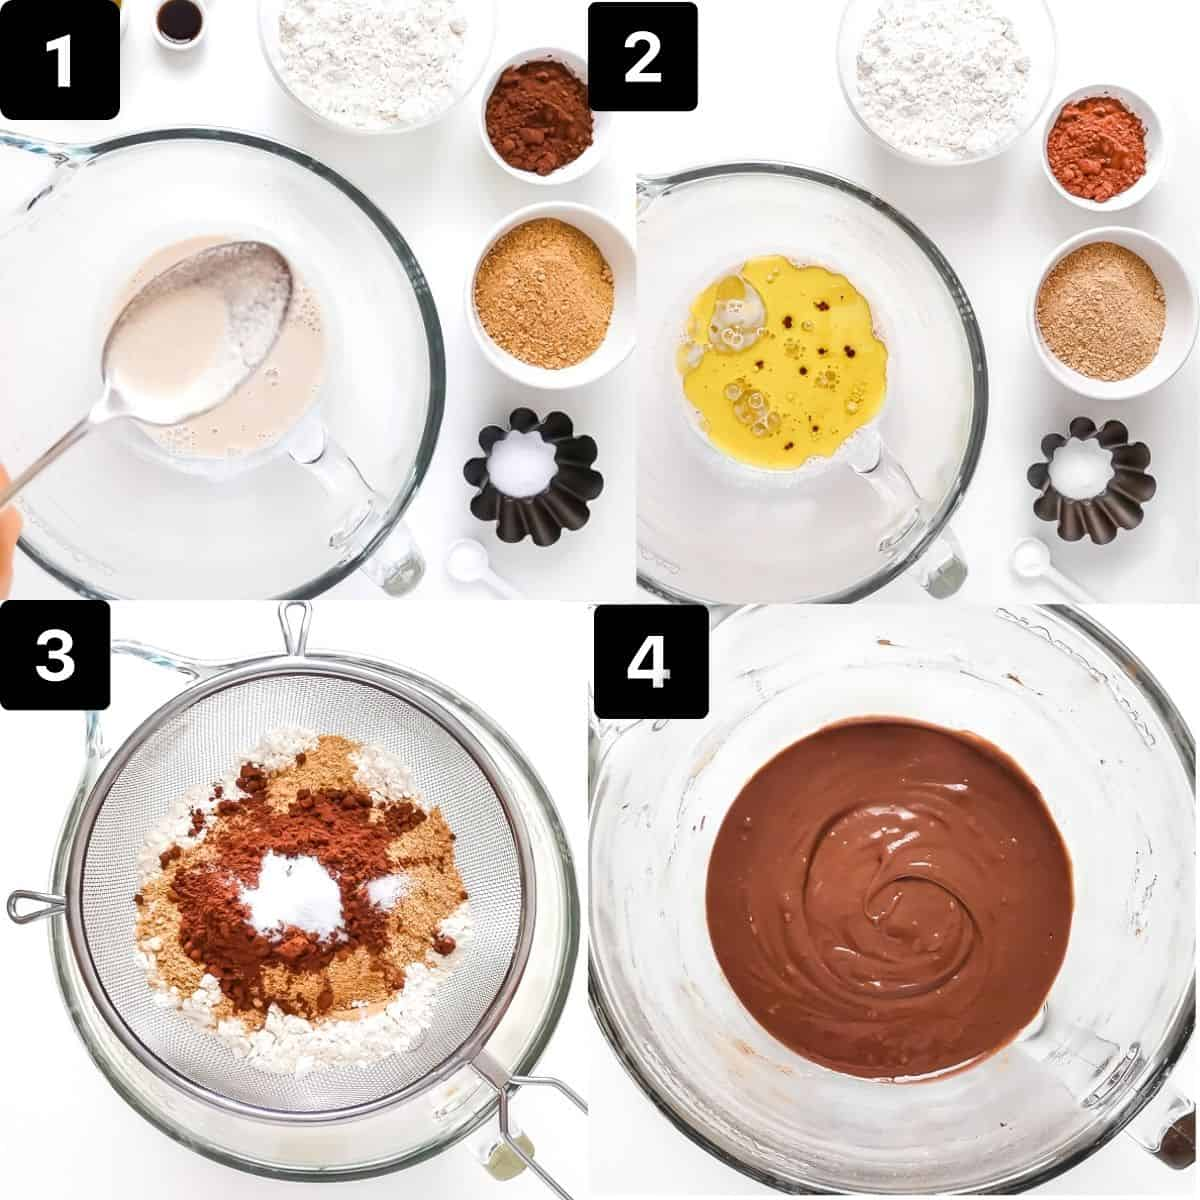 Step by step to make cupcakes: mixing milk and vinegar, add oil and vanilla, sifting in dry ingredients and mixing.